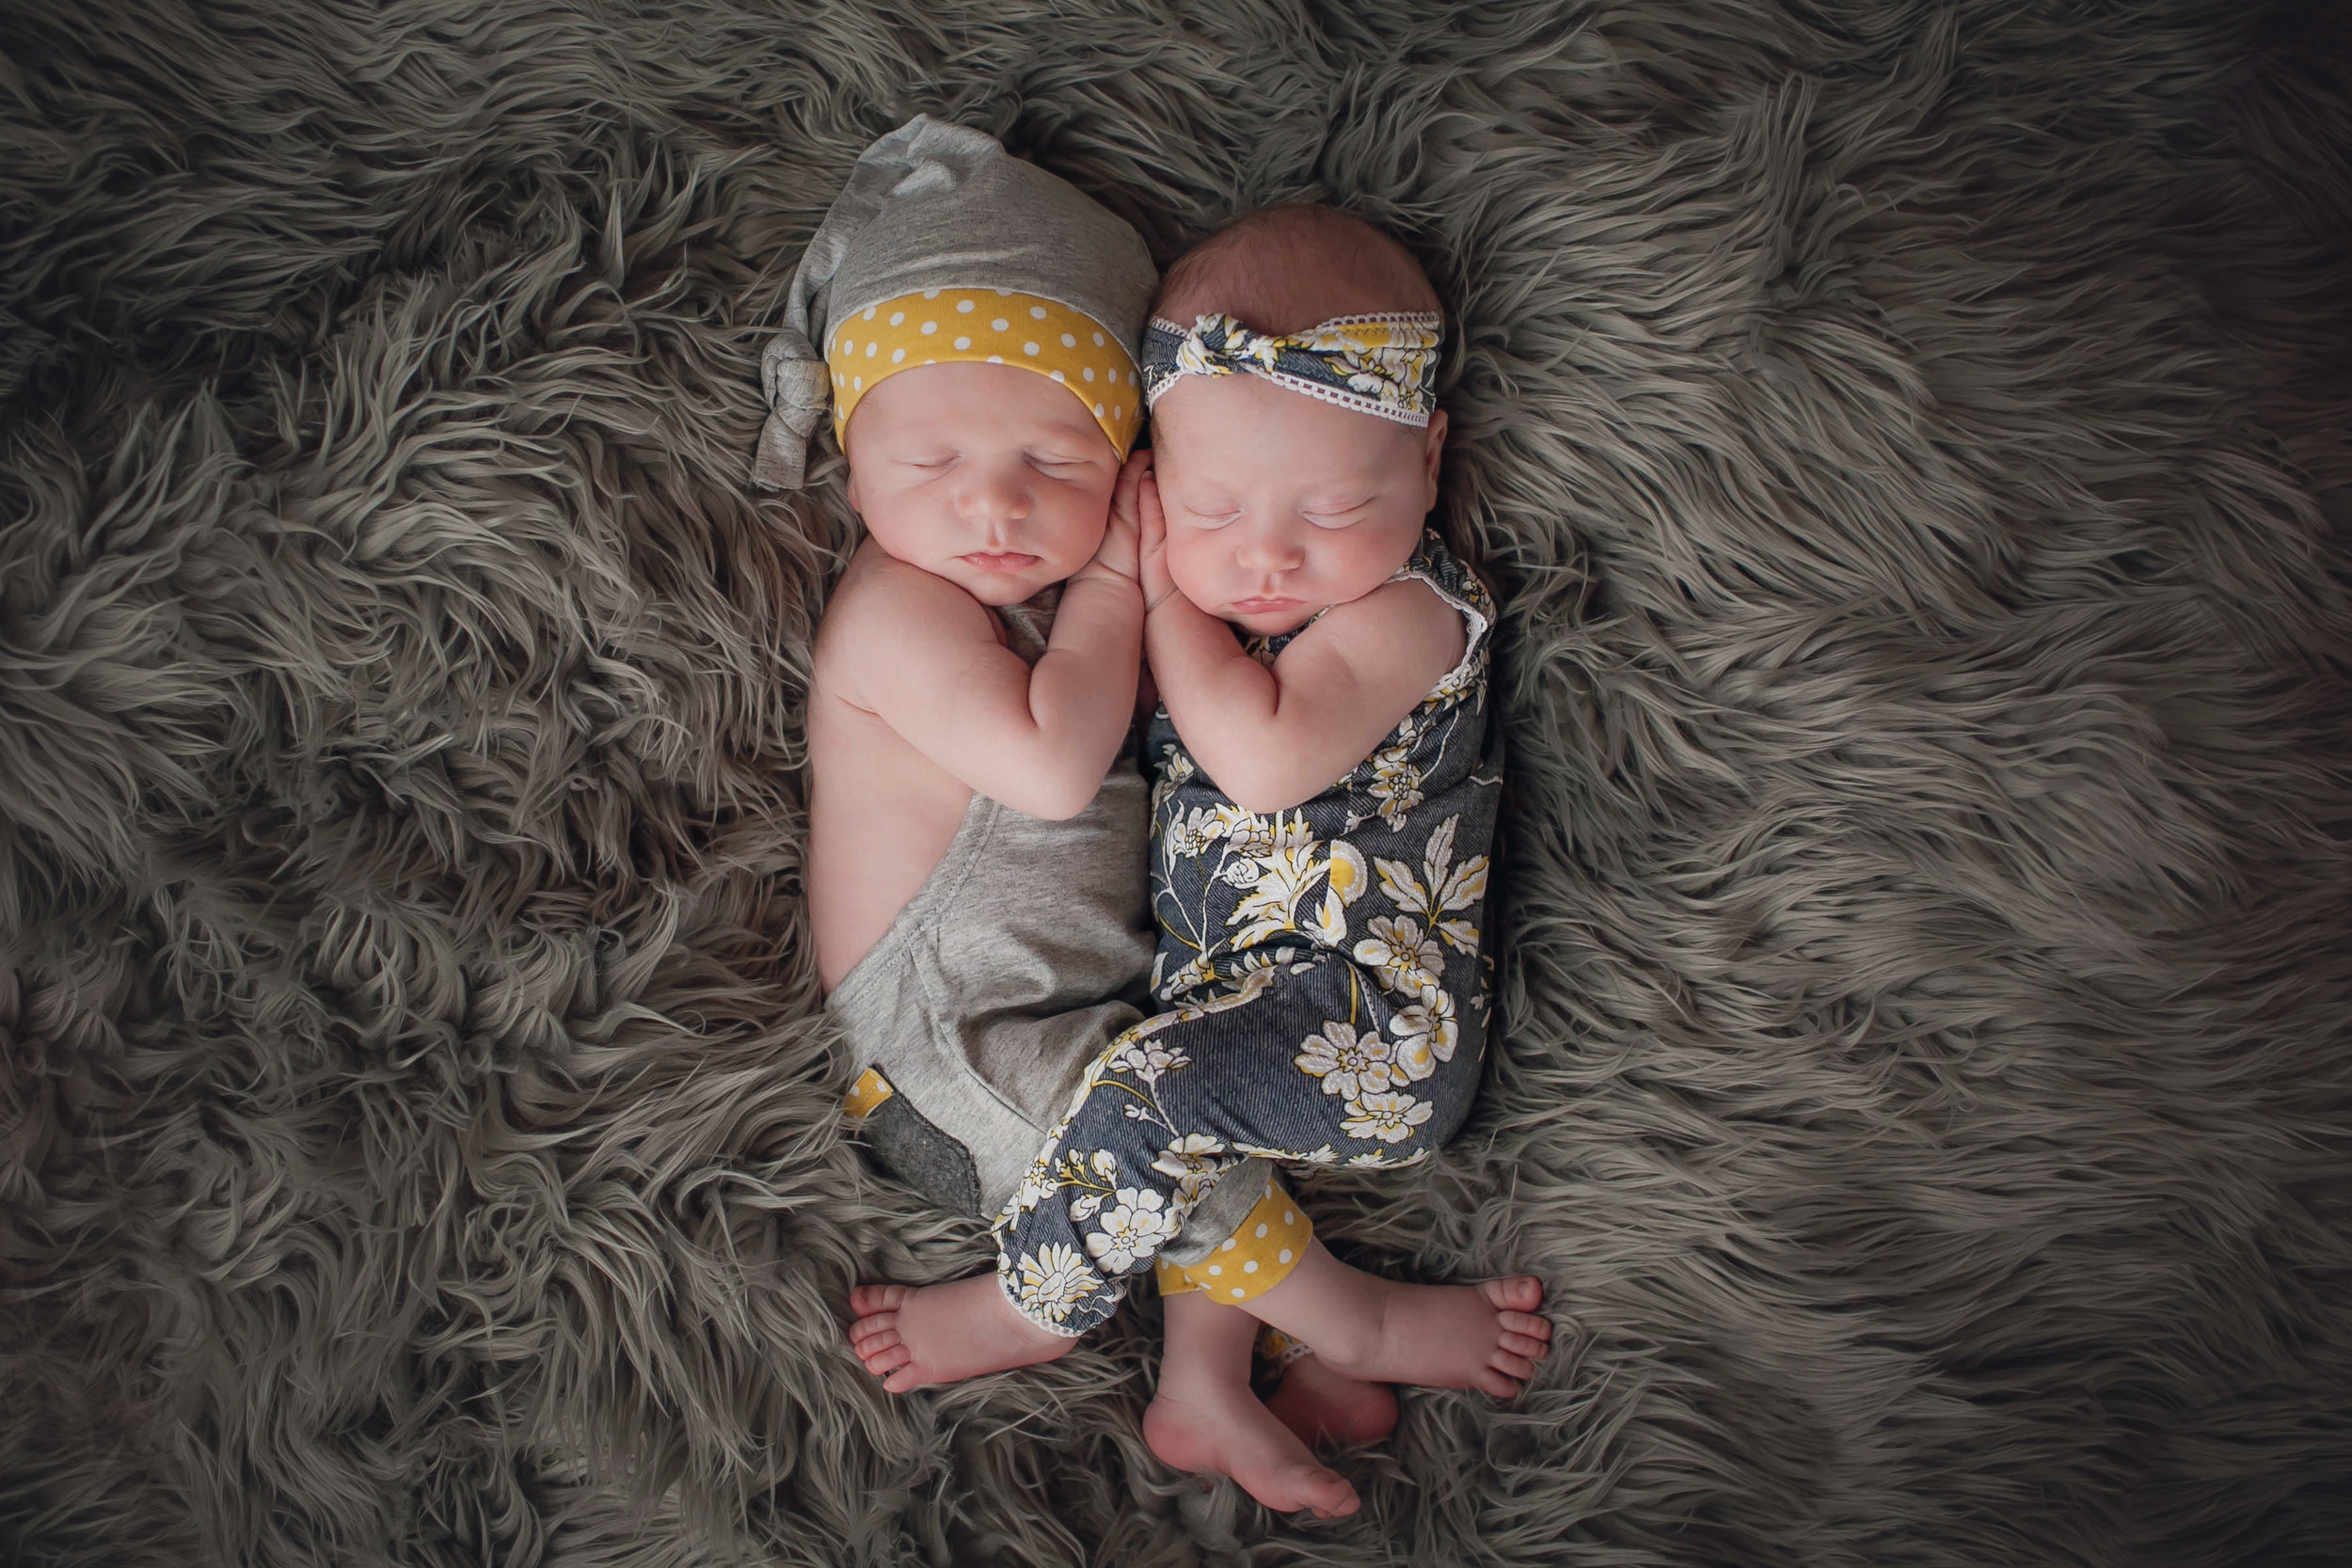 indianapolis-in-newborn-photos-14.jpg